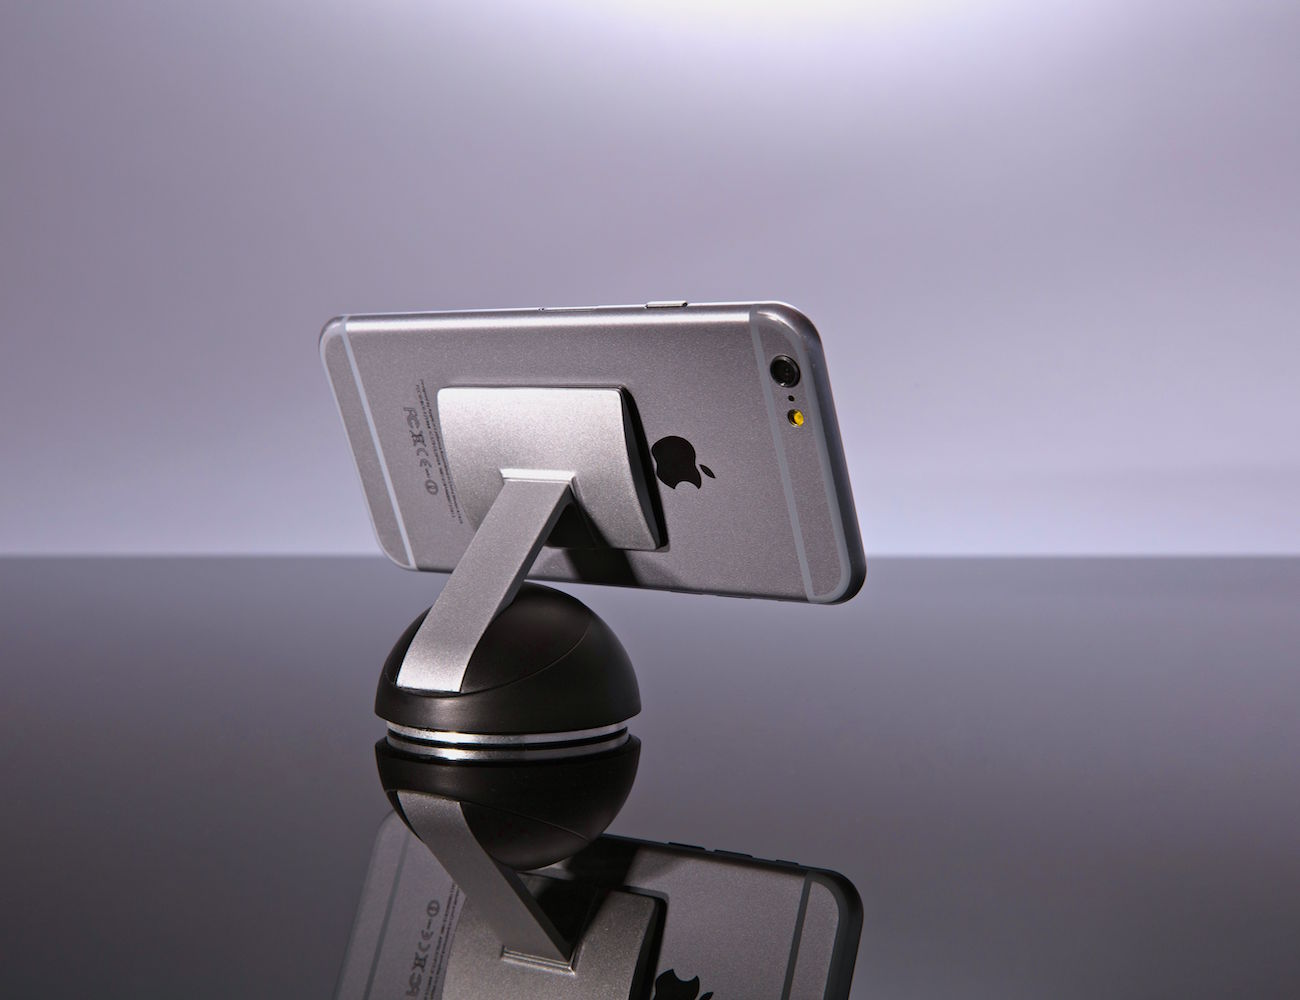 S1 360° Swivel Mount – MicroSuction Phone Dock